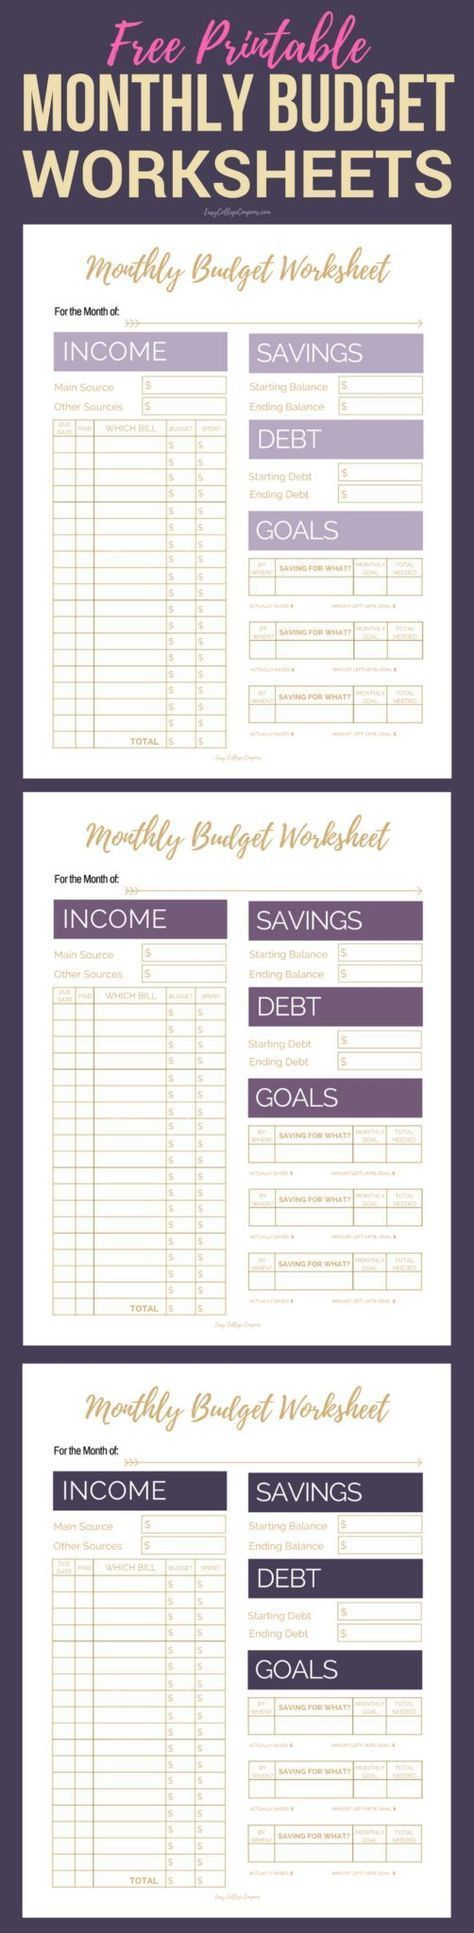 Worksheets Budget Worksheets For Couples get your finances in order with these simple printable budget worksheets includes monthly and expense sheets so you can easil